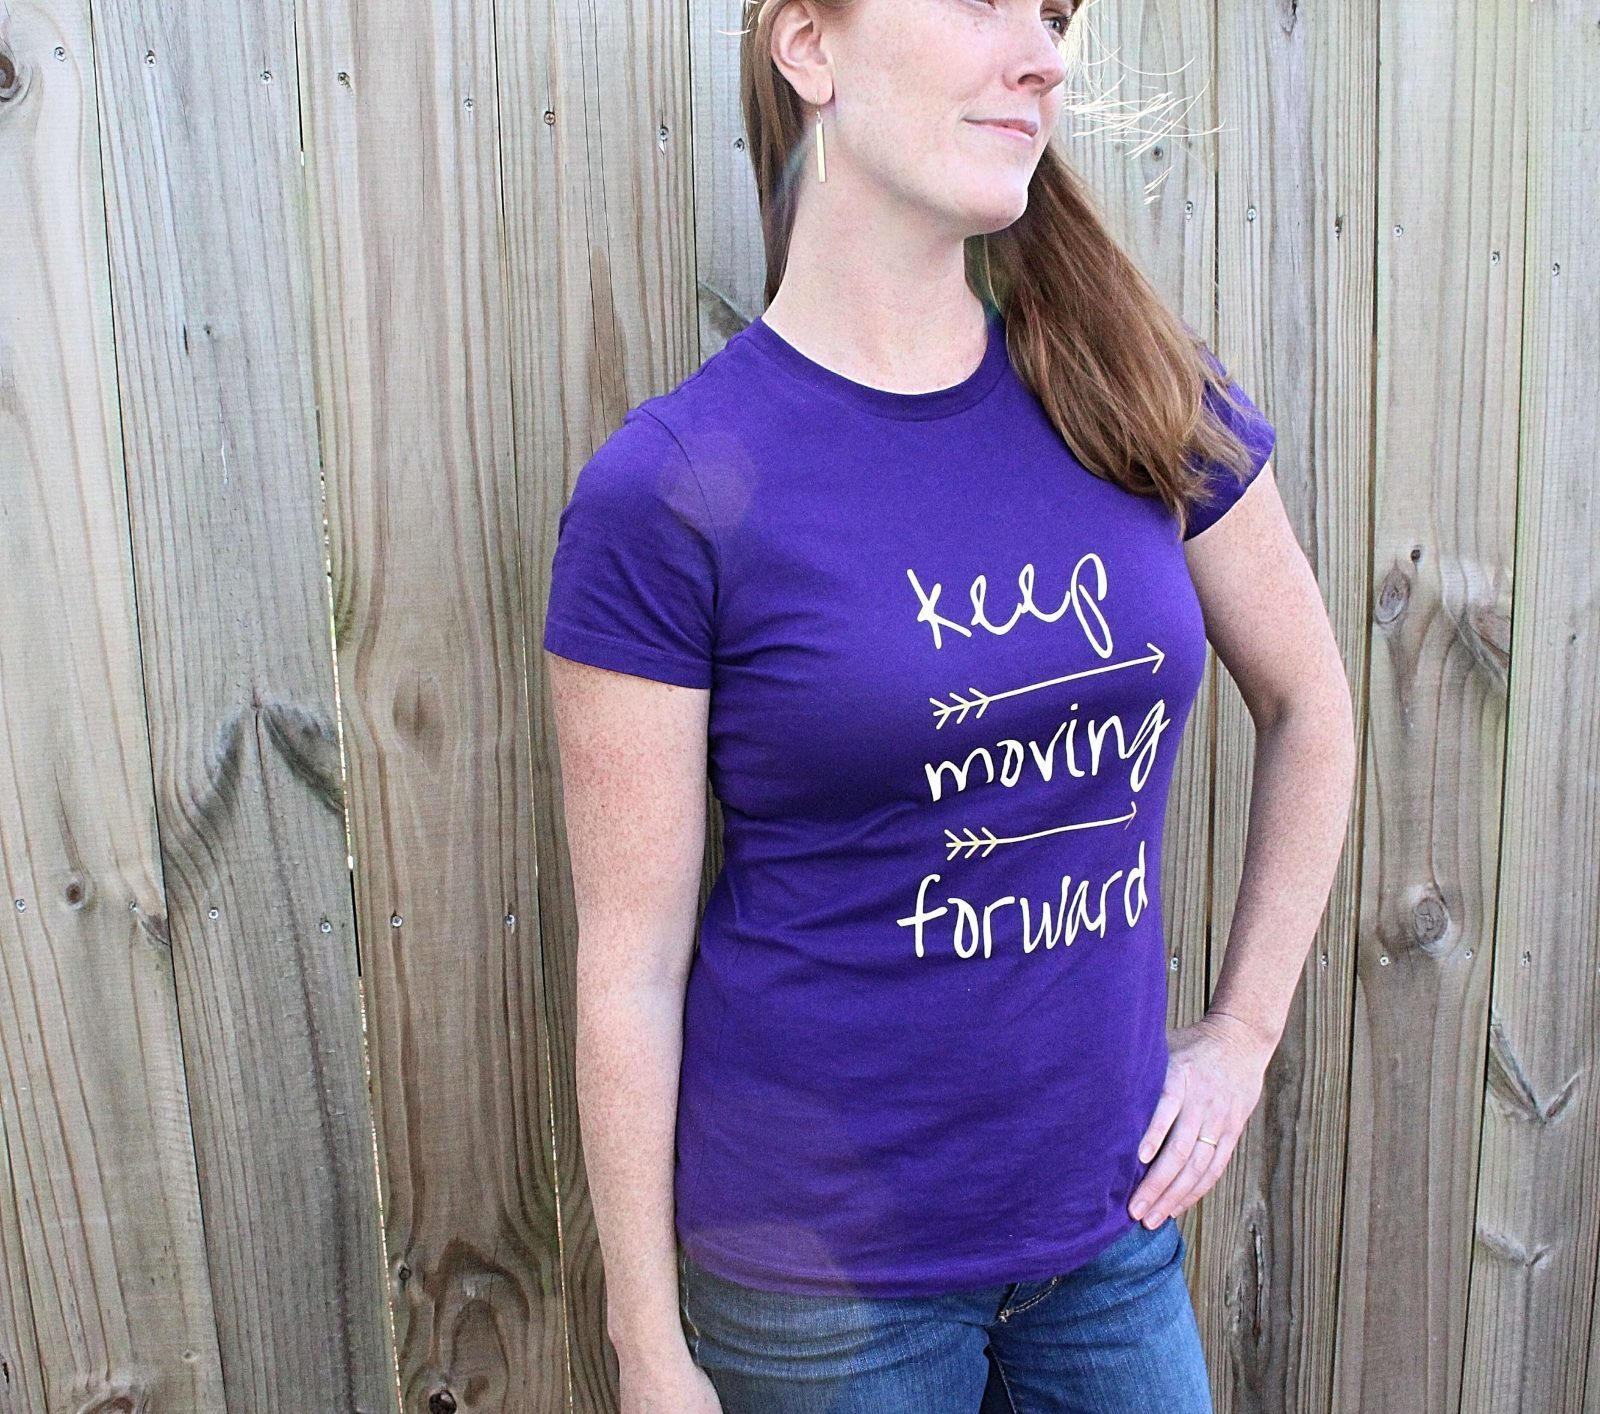 Model posing in front of a wood fence in the blue keep moving forward tshirt